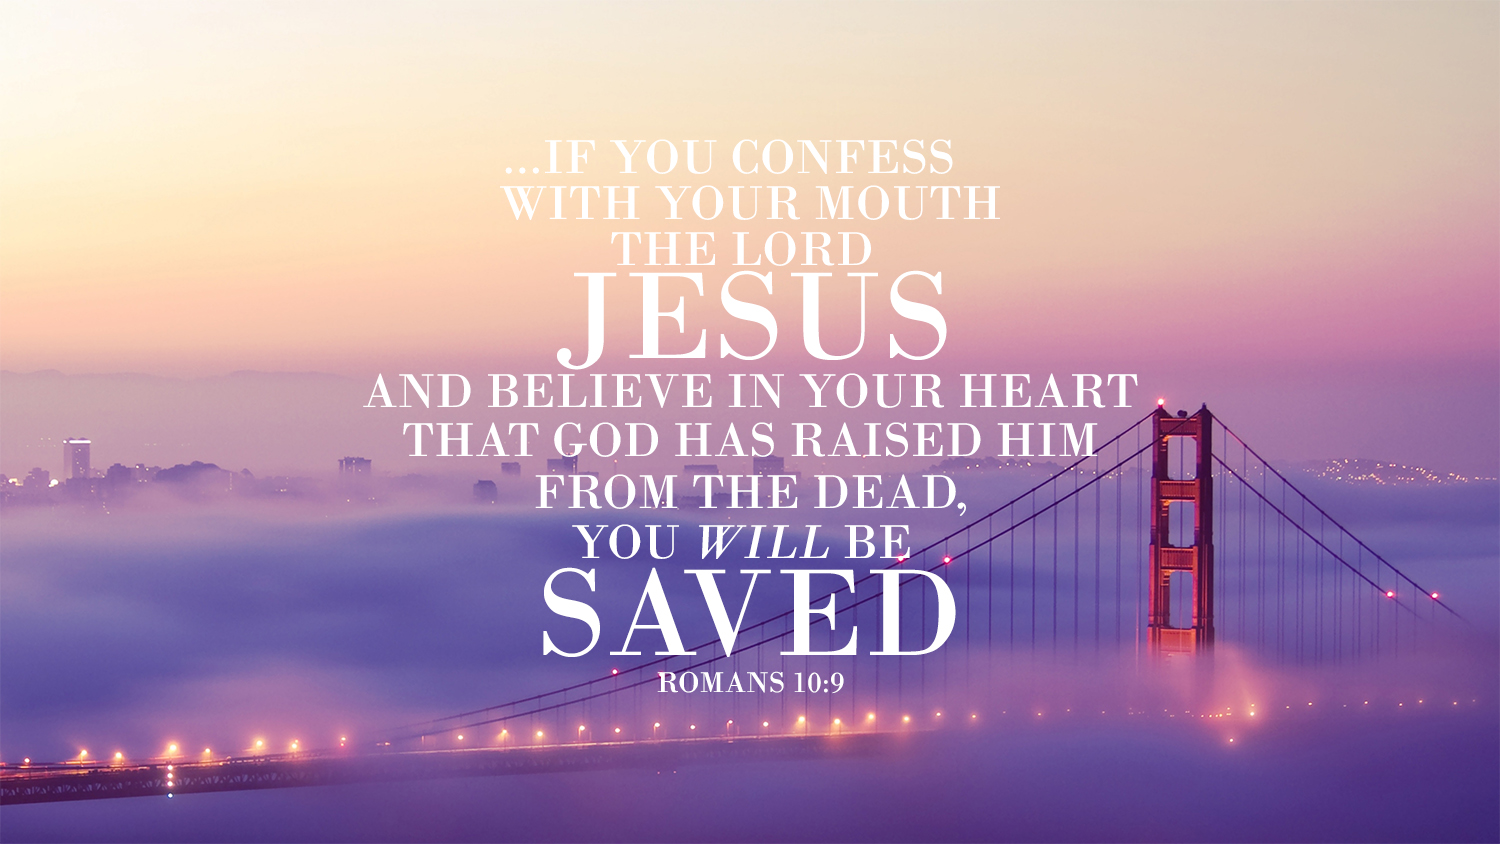 Bible scripture in Romans talking about Jesus with beautiful purple cloudy bridge background photography